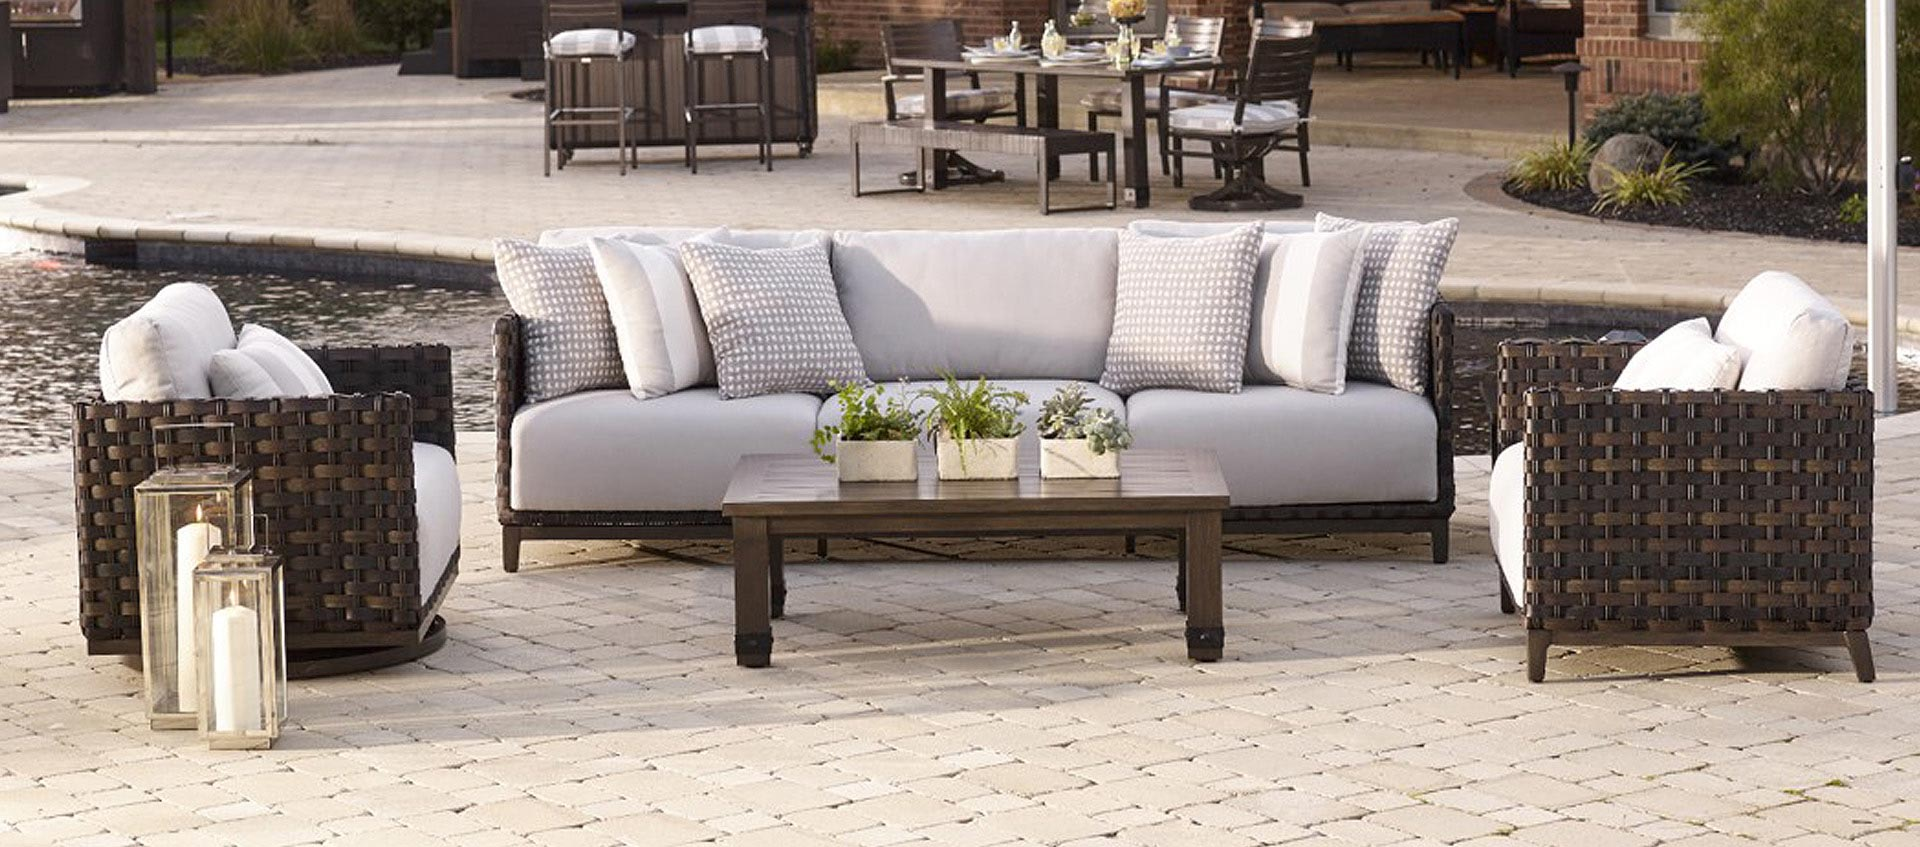 Excellent All American Outdoor Living Patio Furniture Gmtry Best Dining Table And Chair Ideas Images Gmtryco